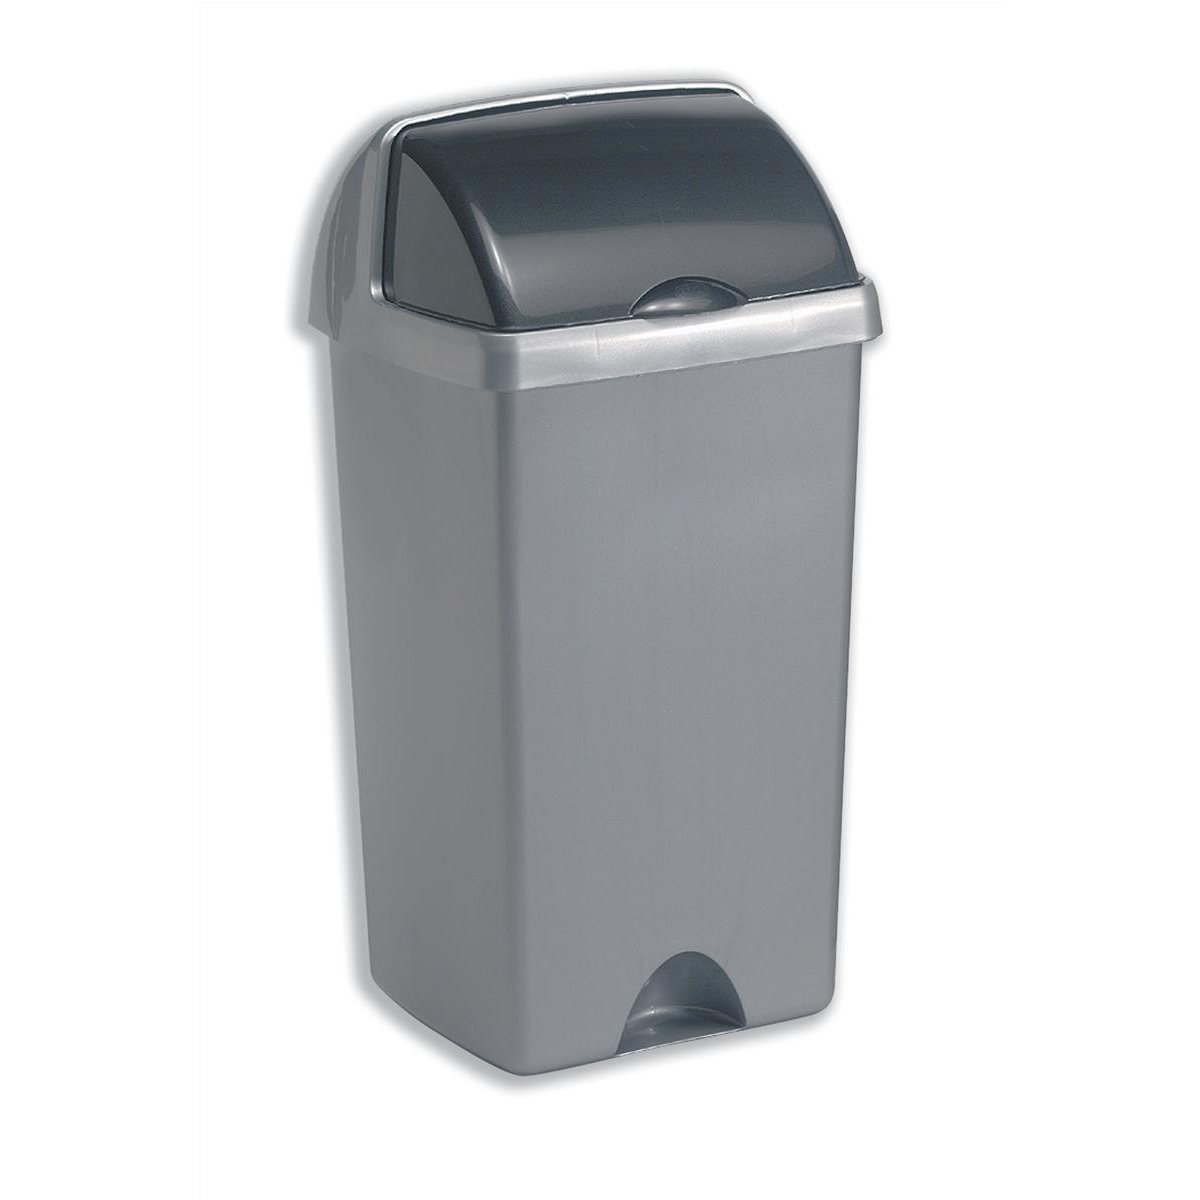 Non metallic bins Addis Roll Top Bin Plastic 50 Litres Metallic Silver